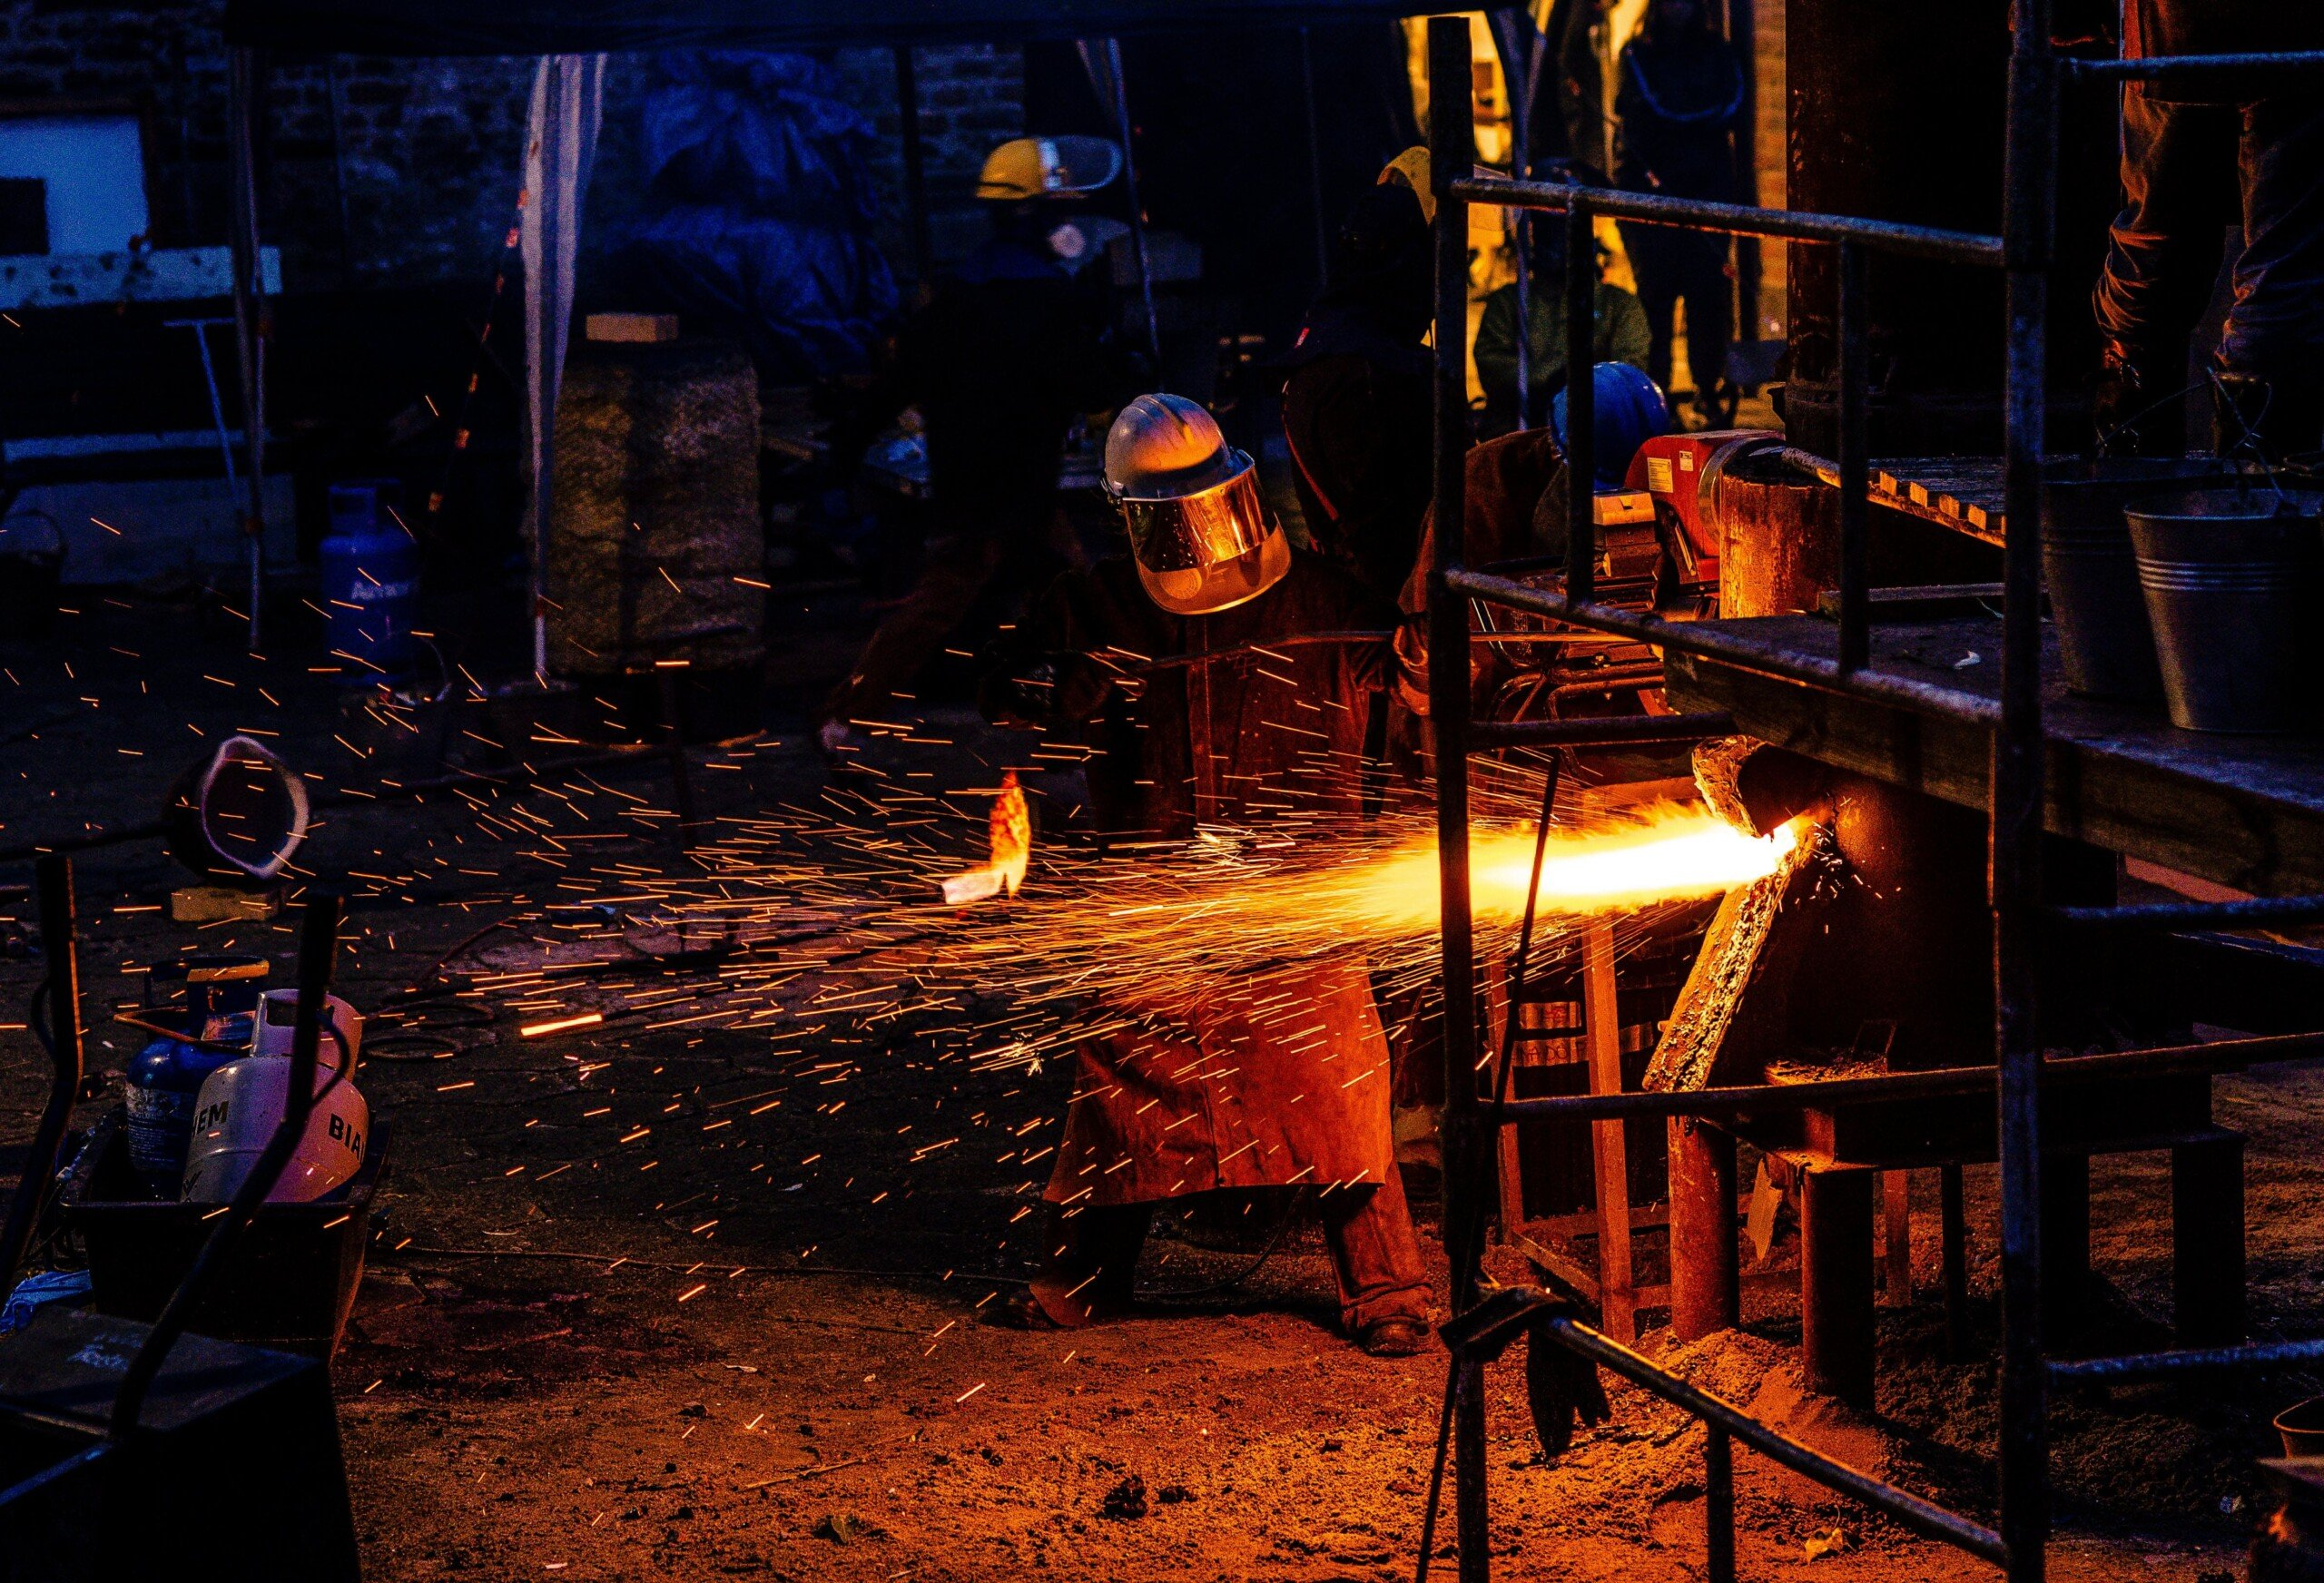 Common Misconceptions about Steel made through Arc Furnace Vs Induction Furnace